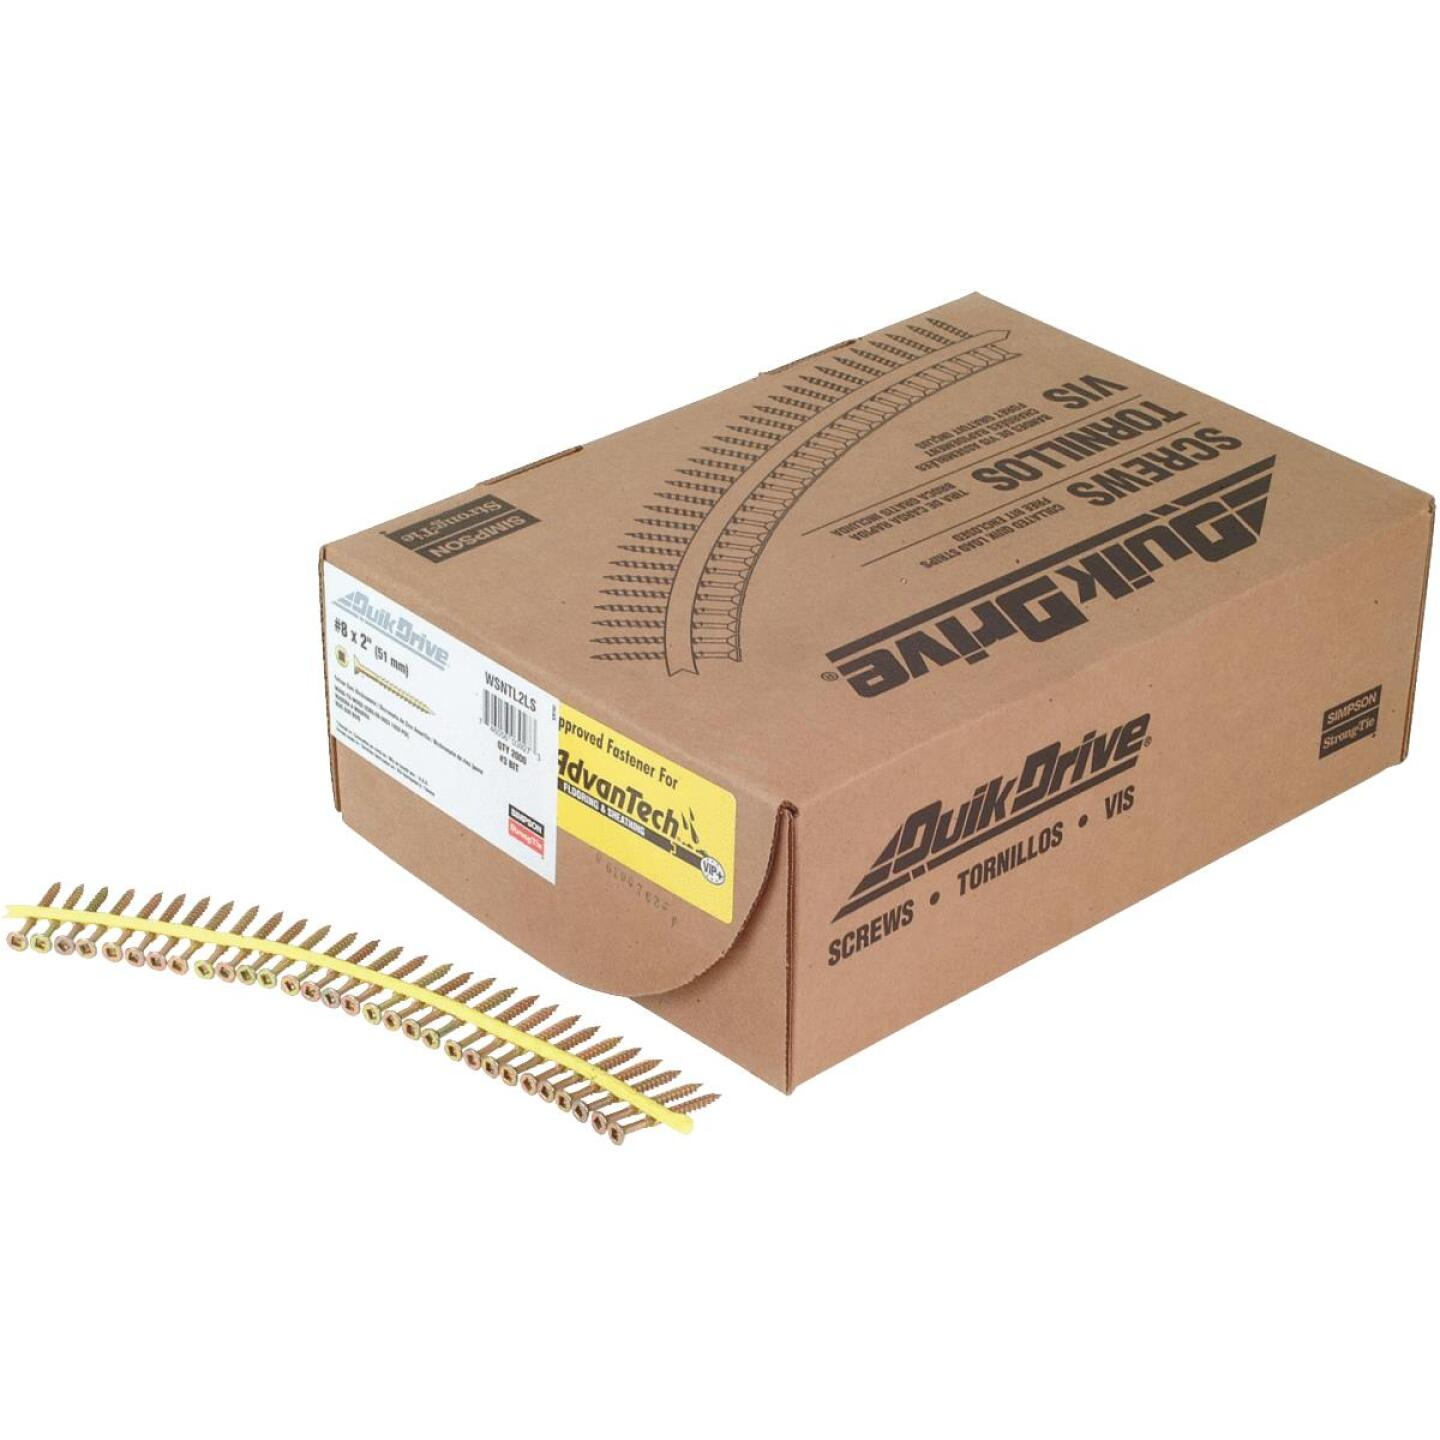 Quick Drive Strong-Drive #9 x 2 In. T-25 WSV Subfloor Collated Wood Screw, Yellow Zinc Finish(2000-Ct.) Image 1